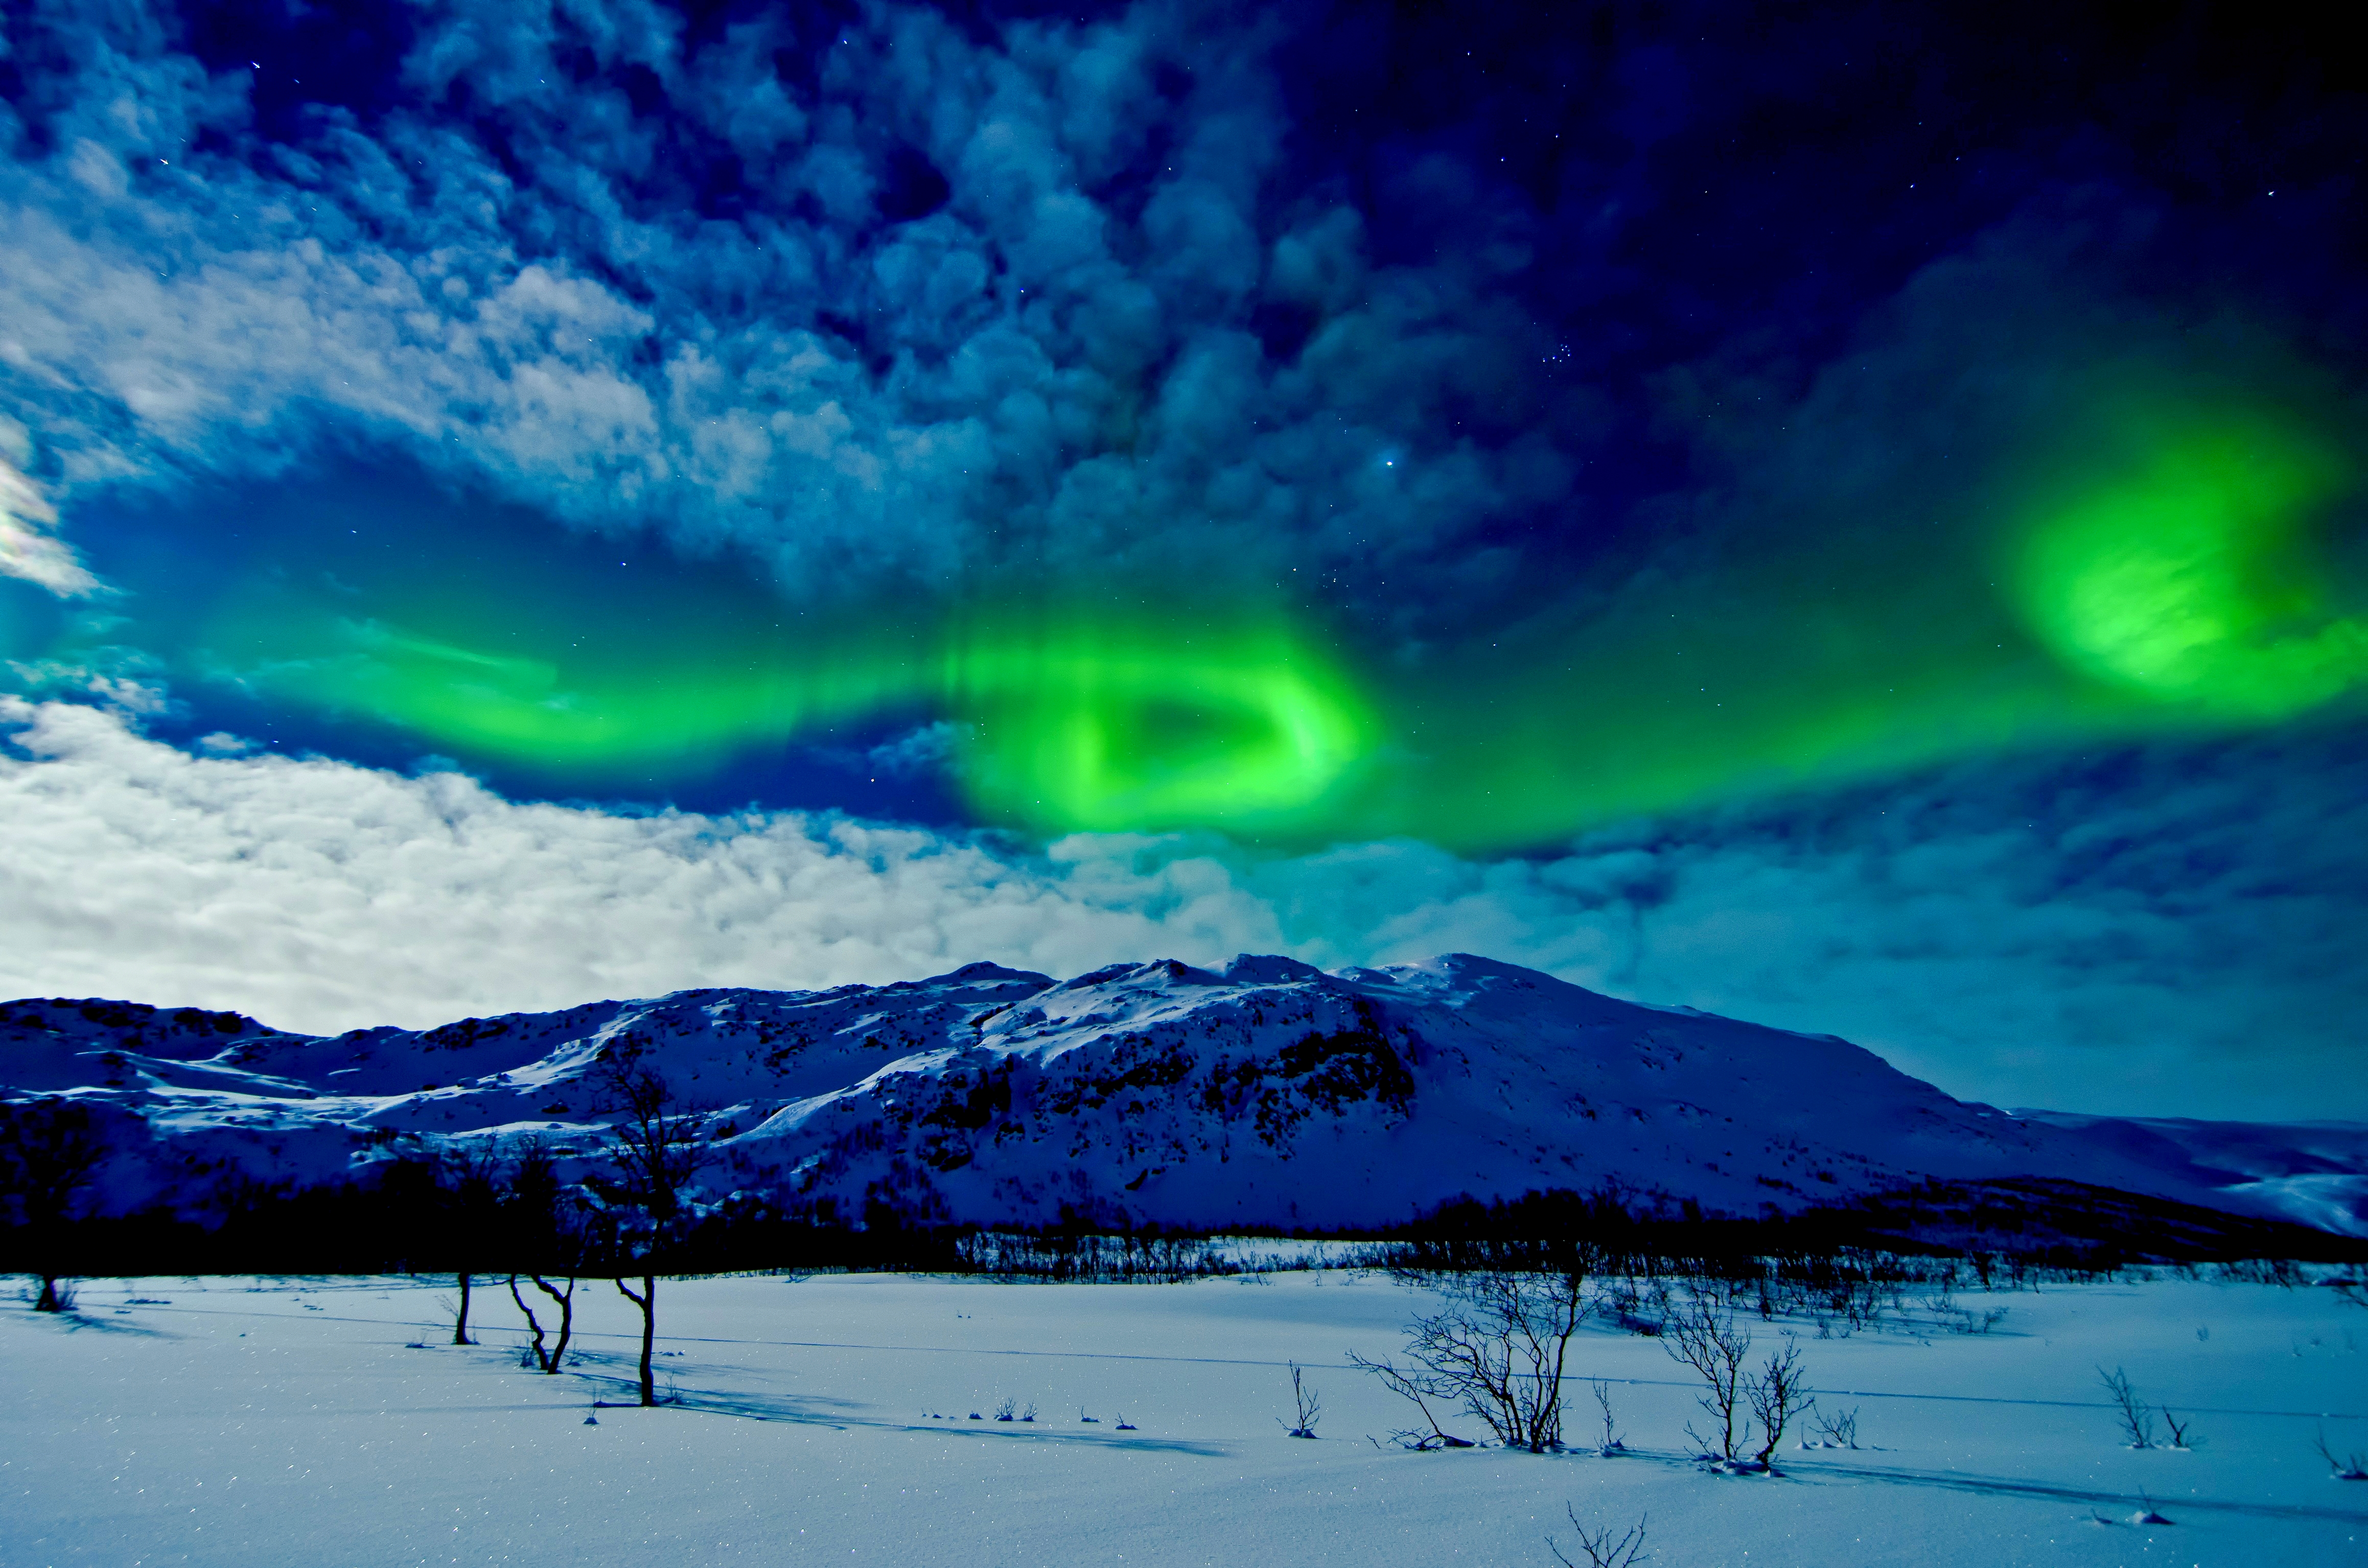 Aurora Borealis Over Winter Mountains 4k Ultra HD Wallpaper And